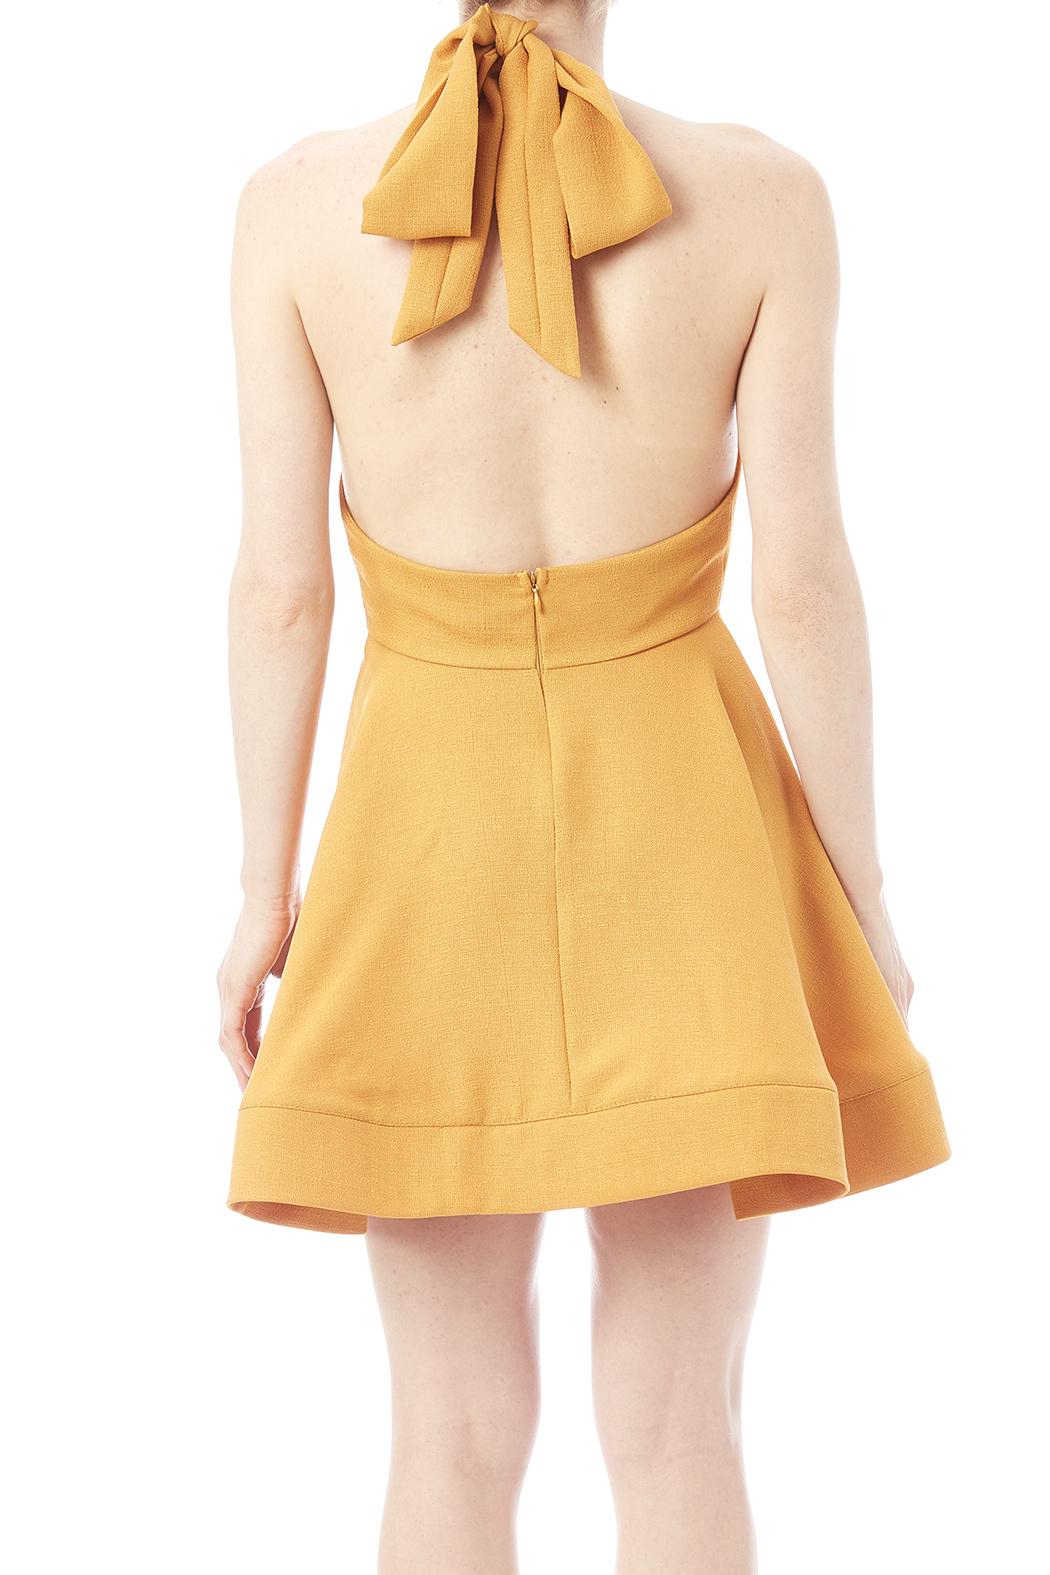 luxxel The Mandy Dress - Back Cropped Image